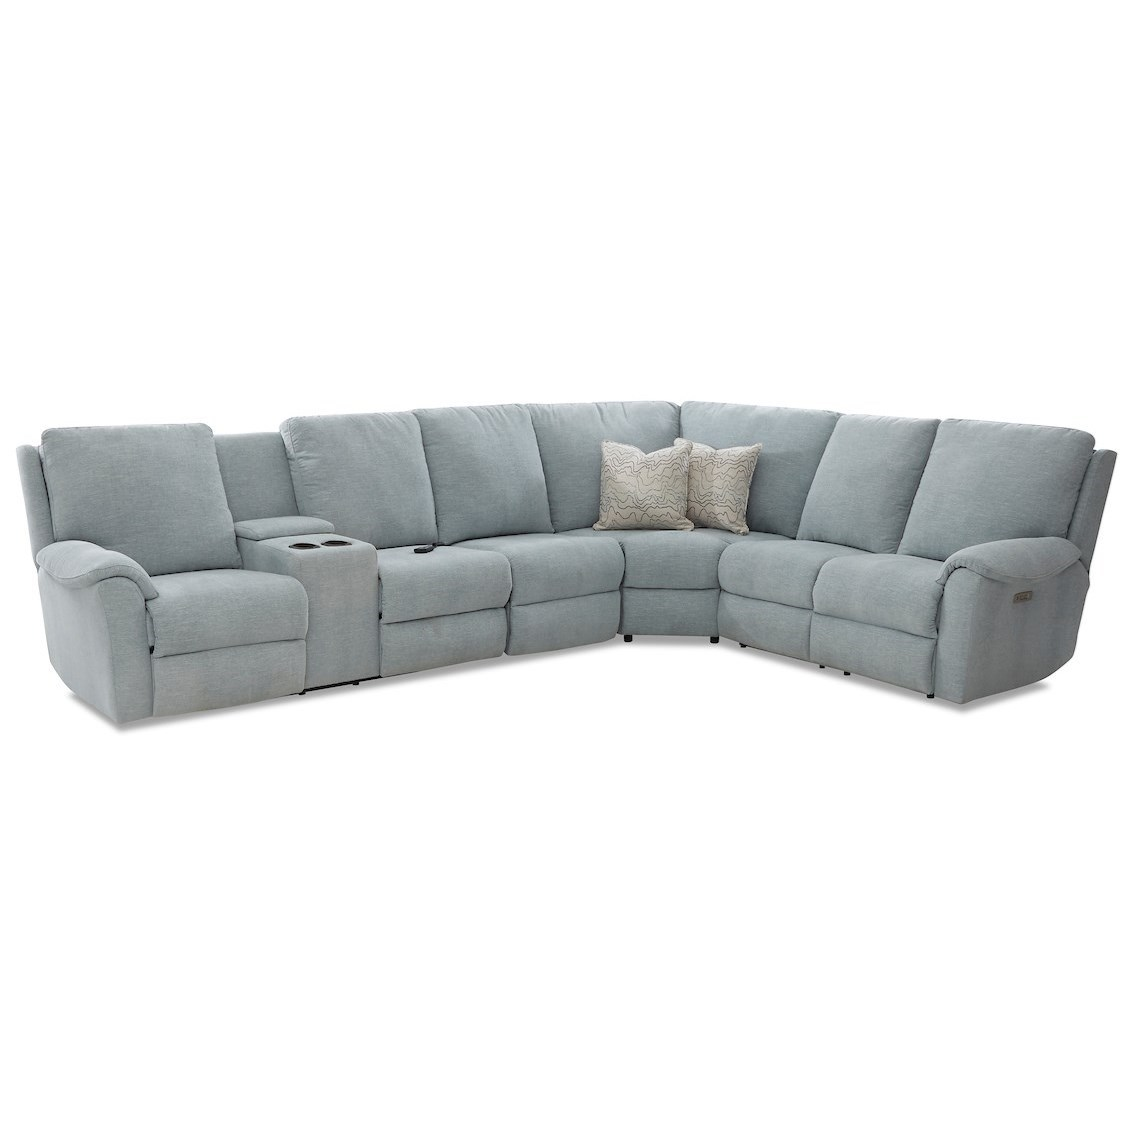 Davos Pwr Recline Sectional w/ LAF Cnsl & Pwr Head by Klaussner at Johnny Janosik